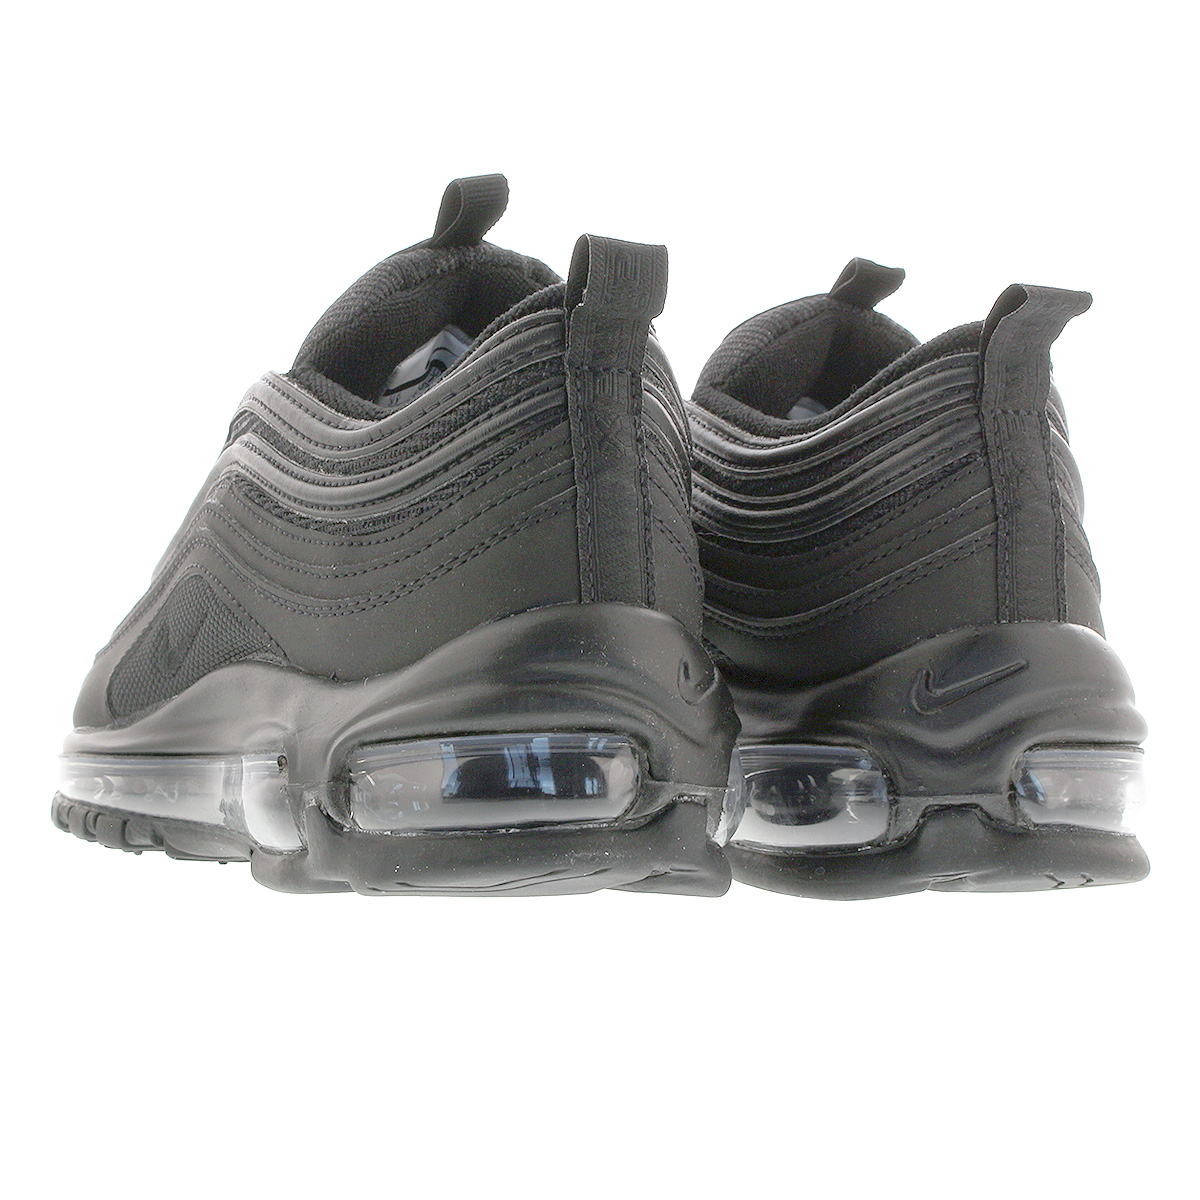 Nike Air Max Silver With Sequence Musée des